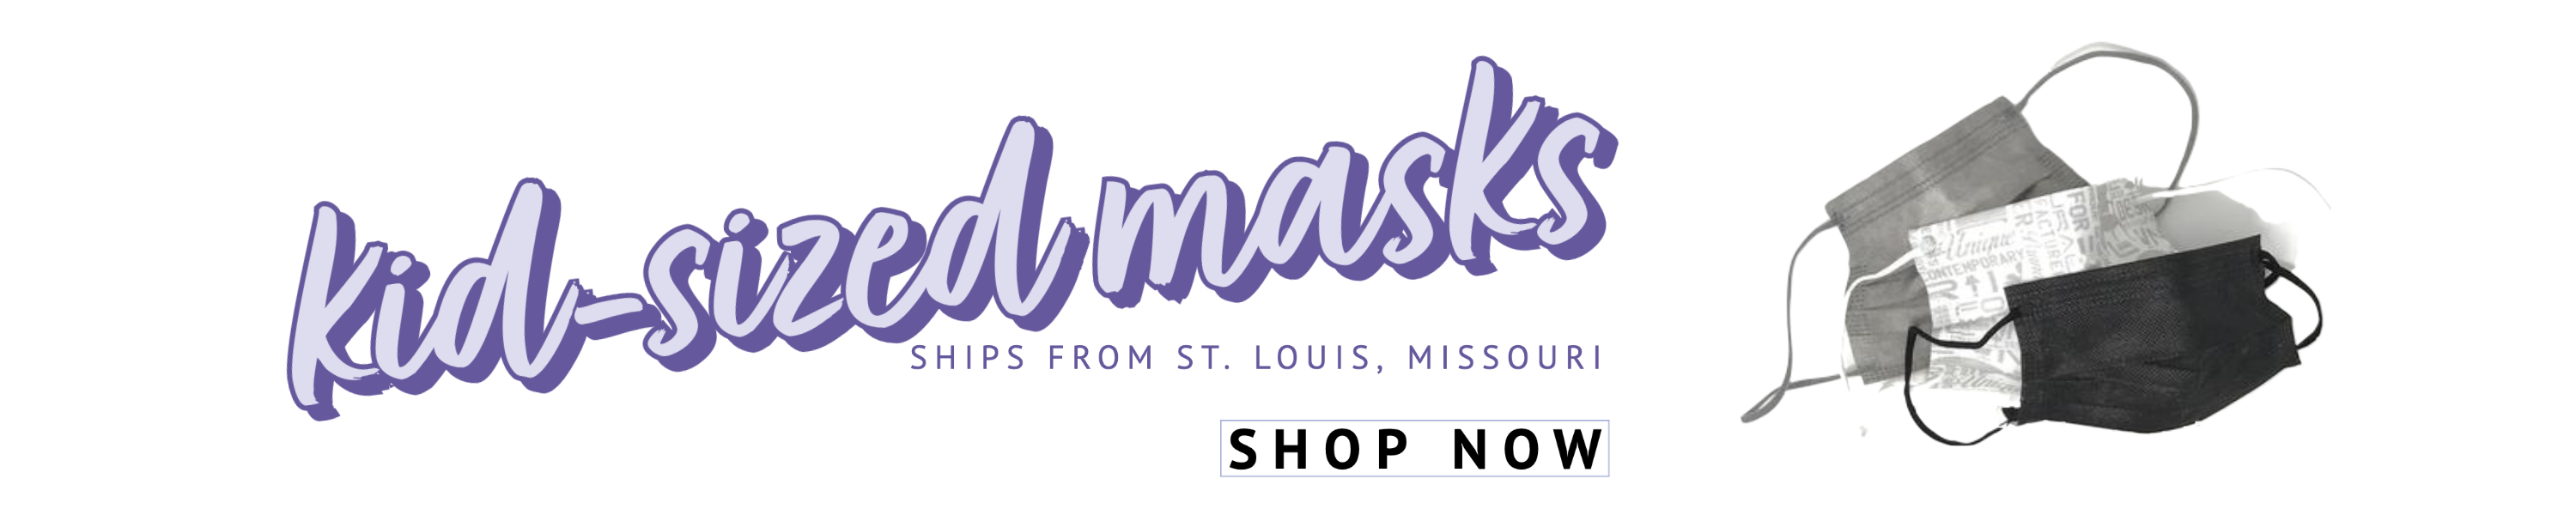 Kid-sized masks - SHOP NOW ships from St. Louis, MO PPE